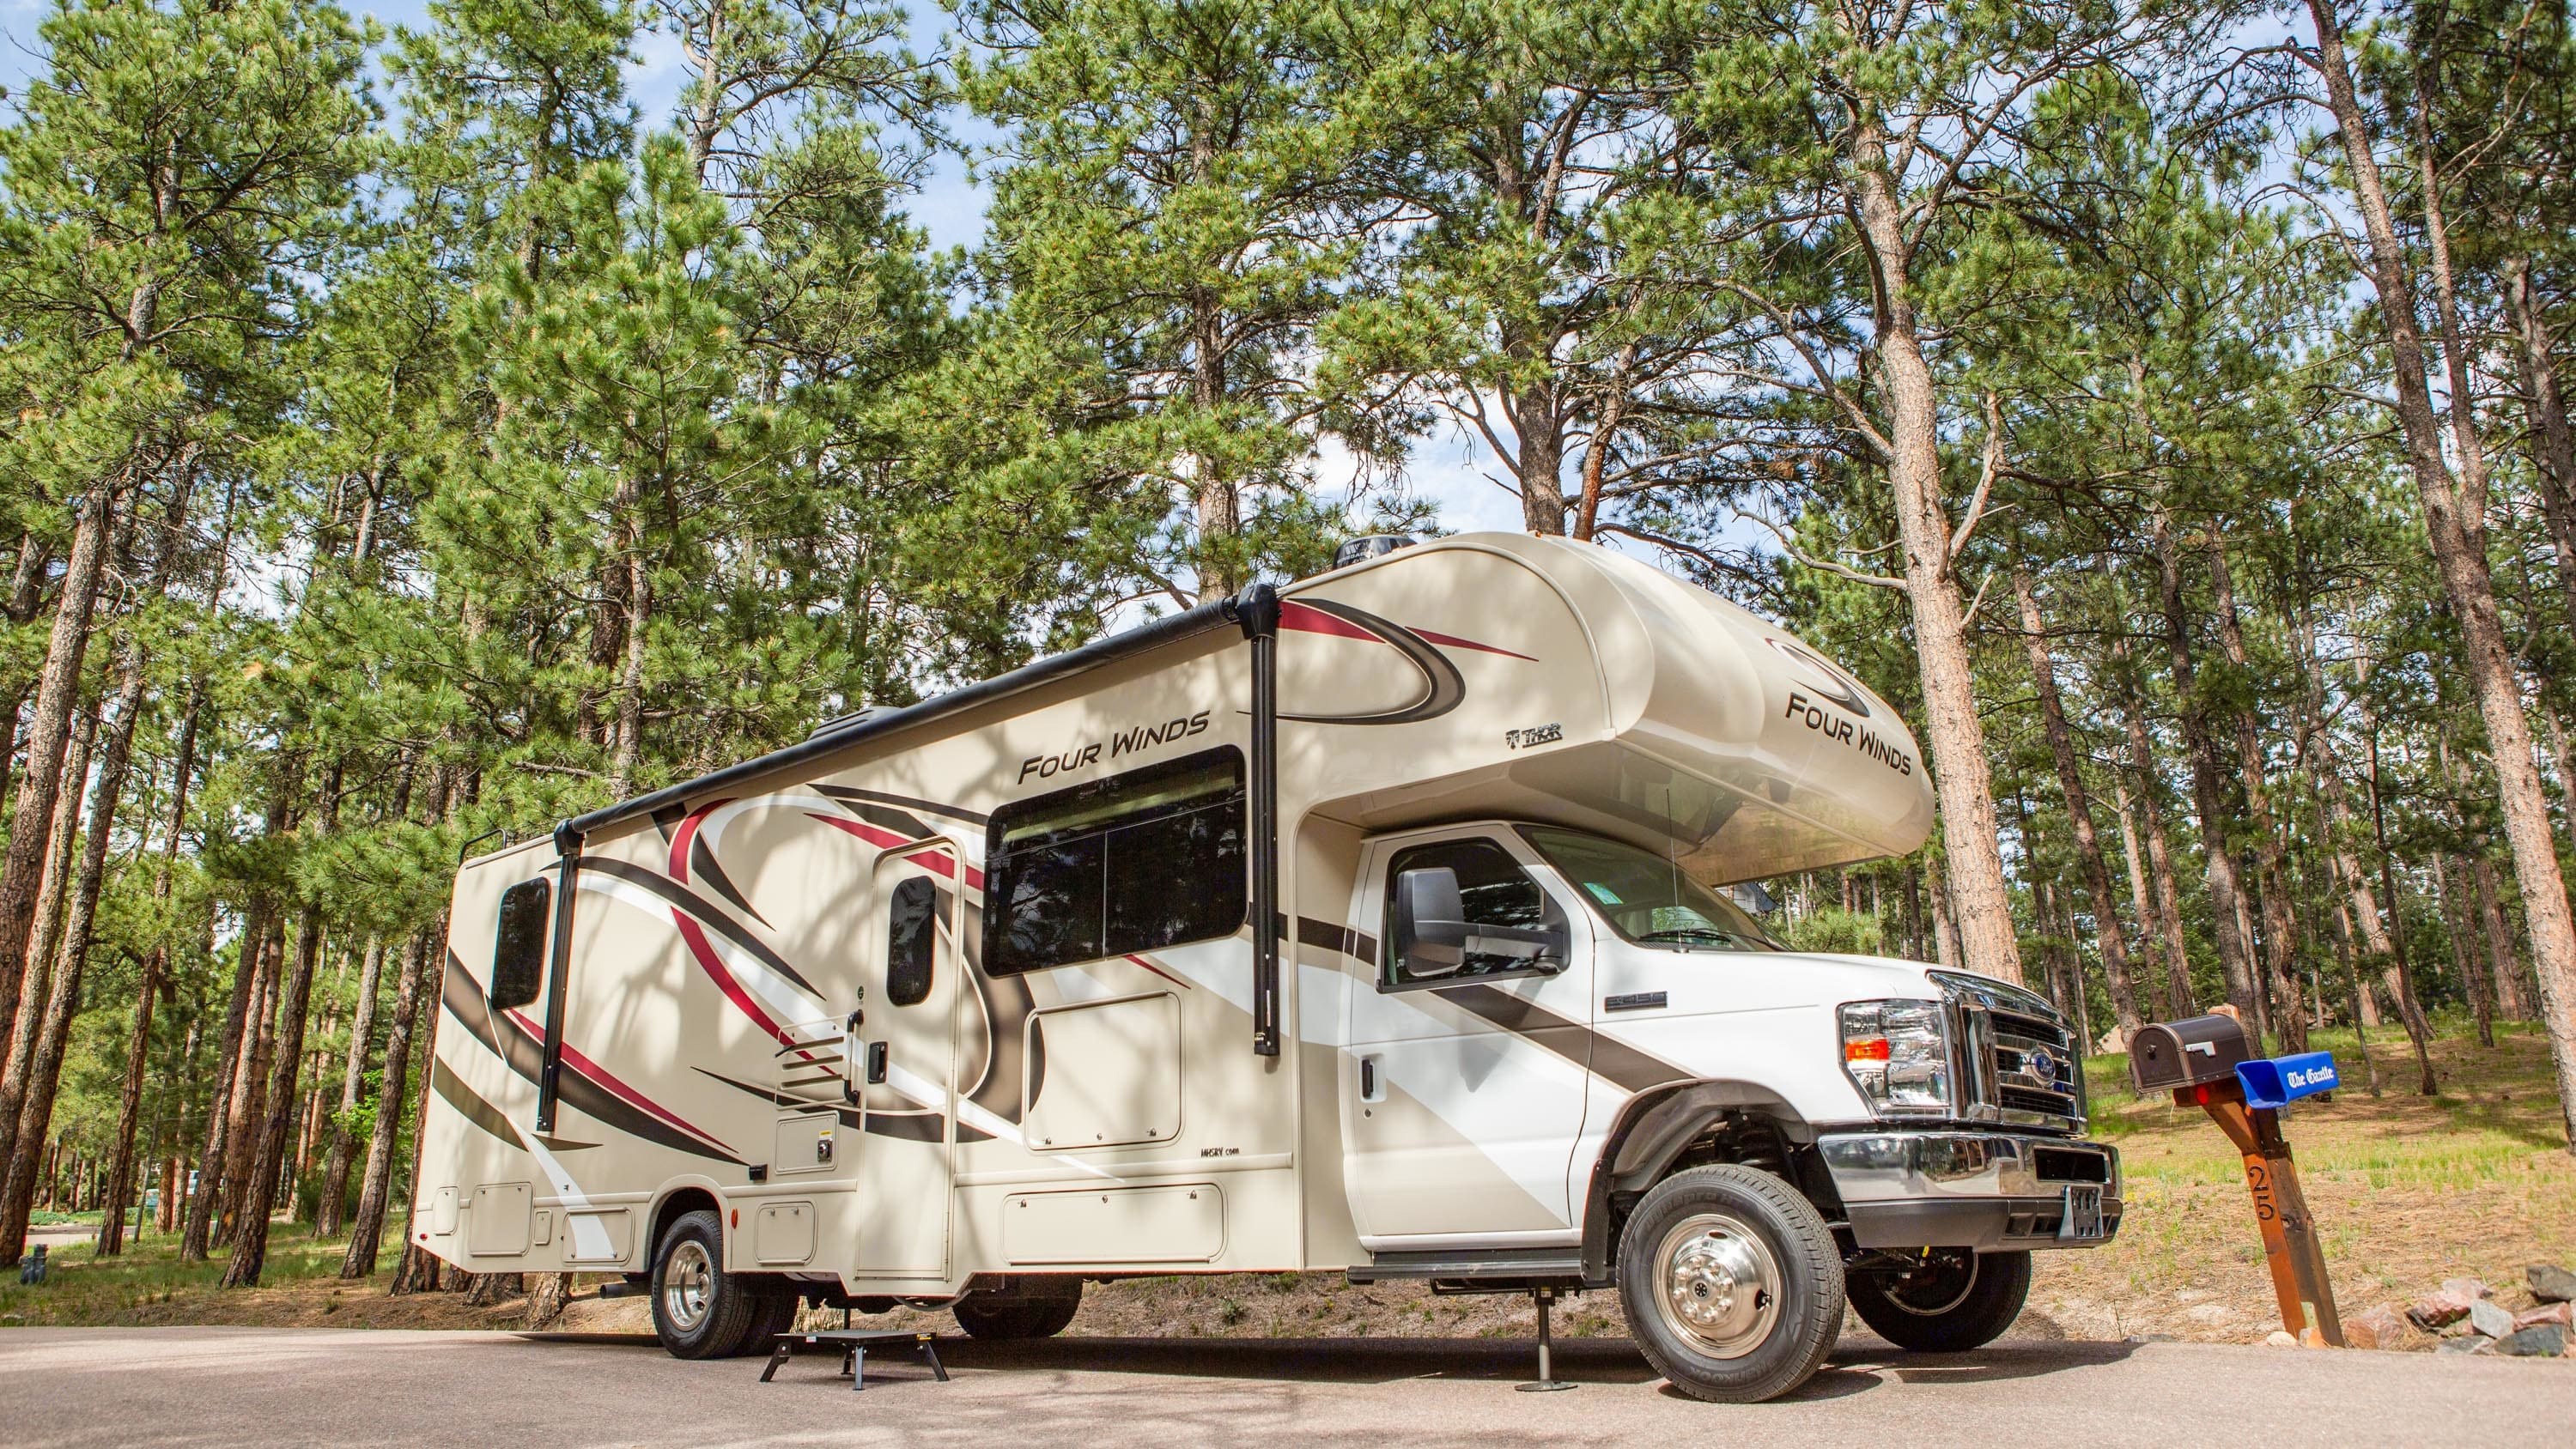 2020 Thor Four Winds, 32 ft purchased new June 2020. Thor Motor Coach Four Winds 2020